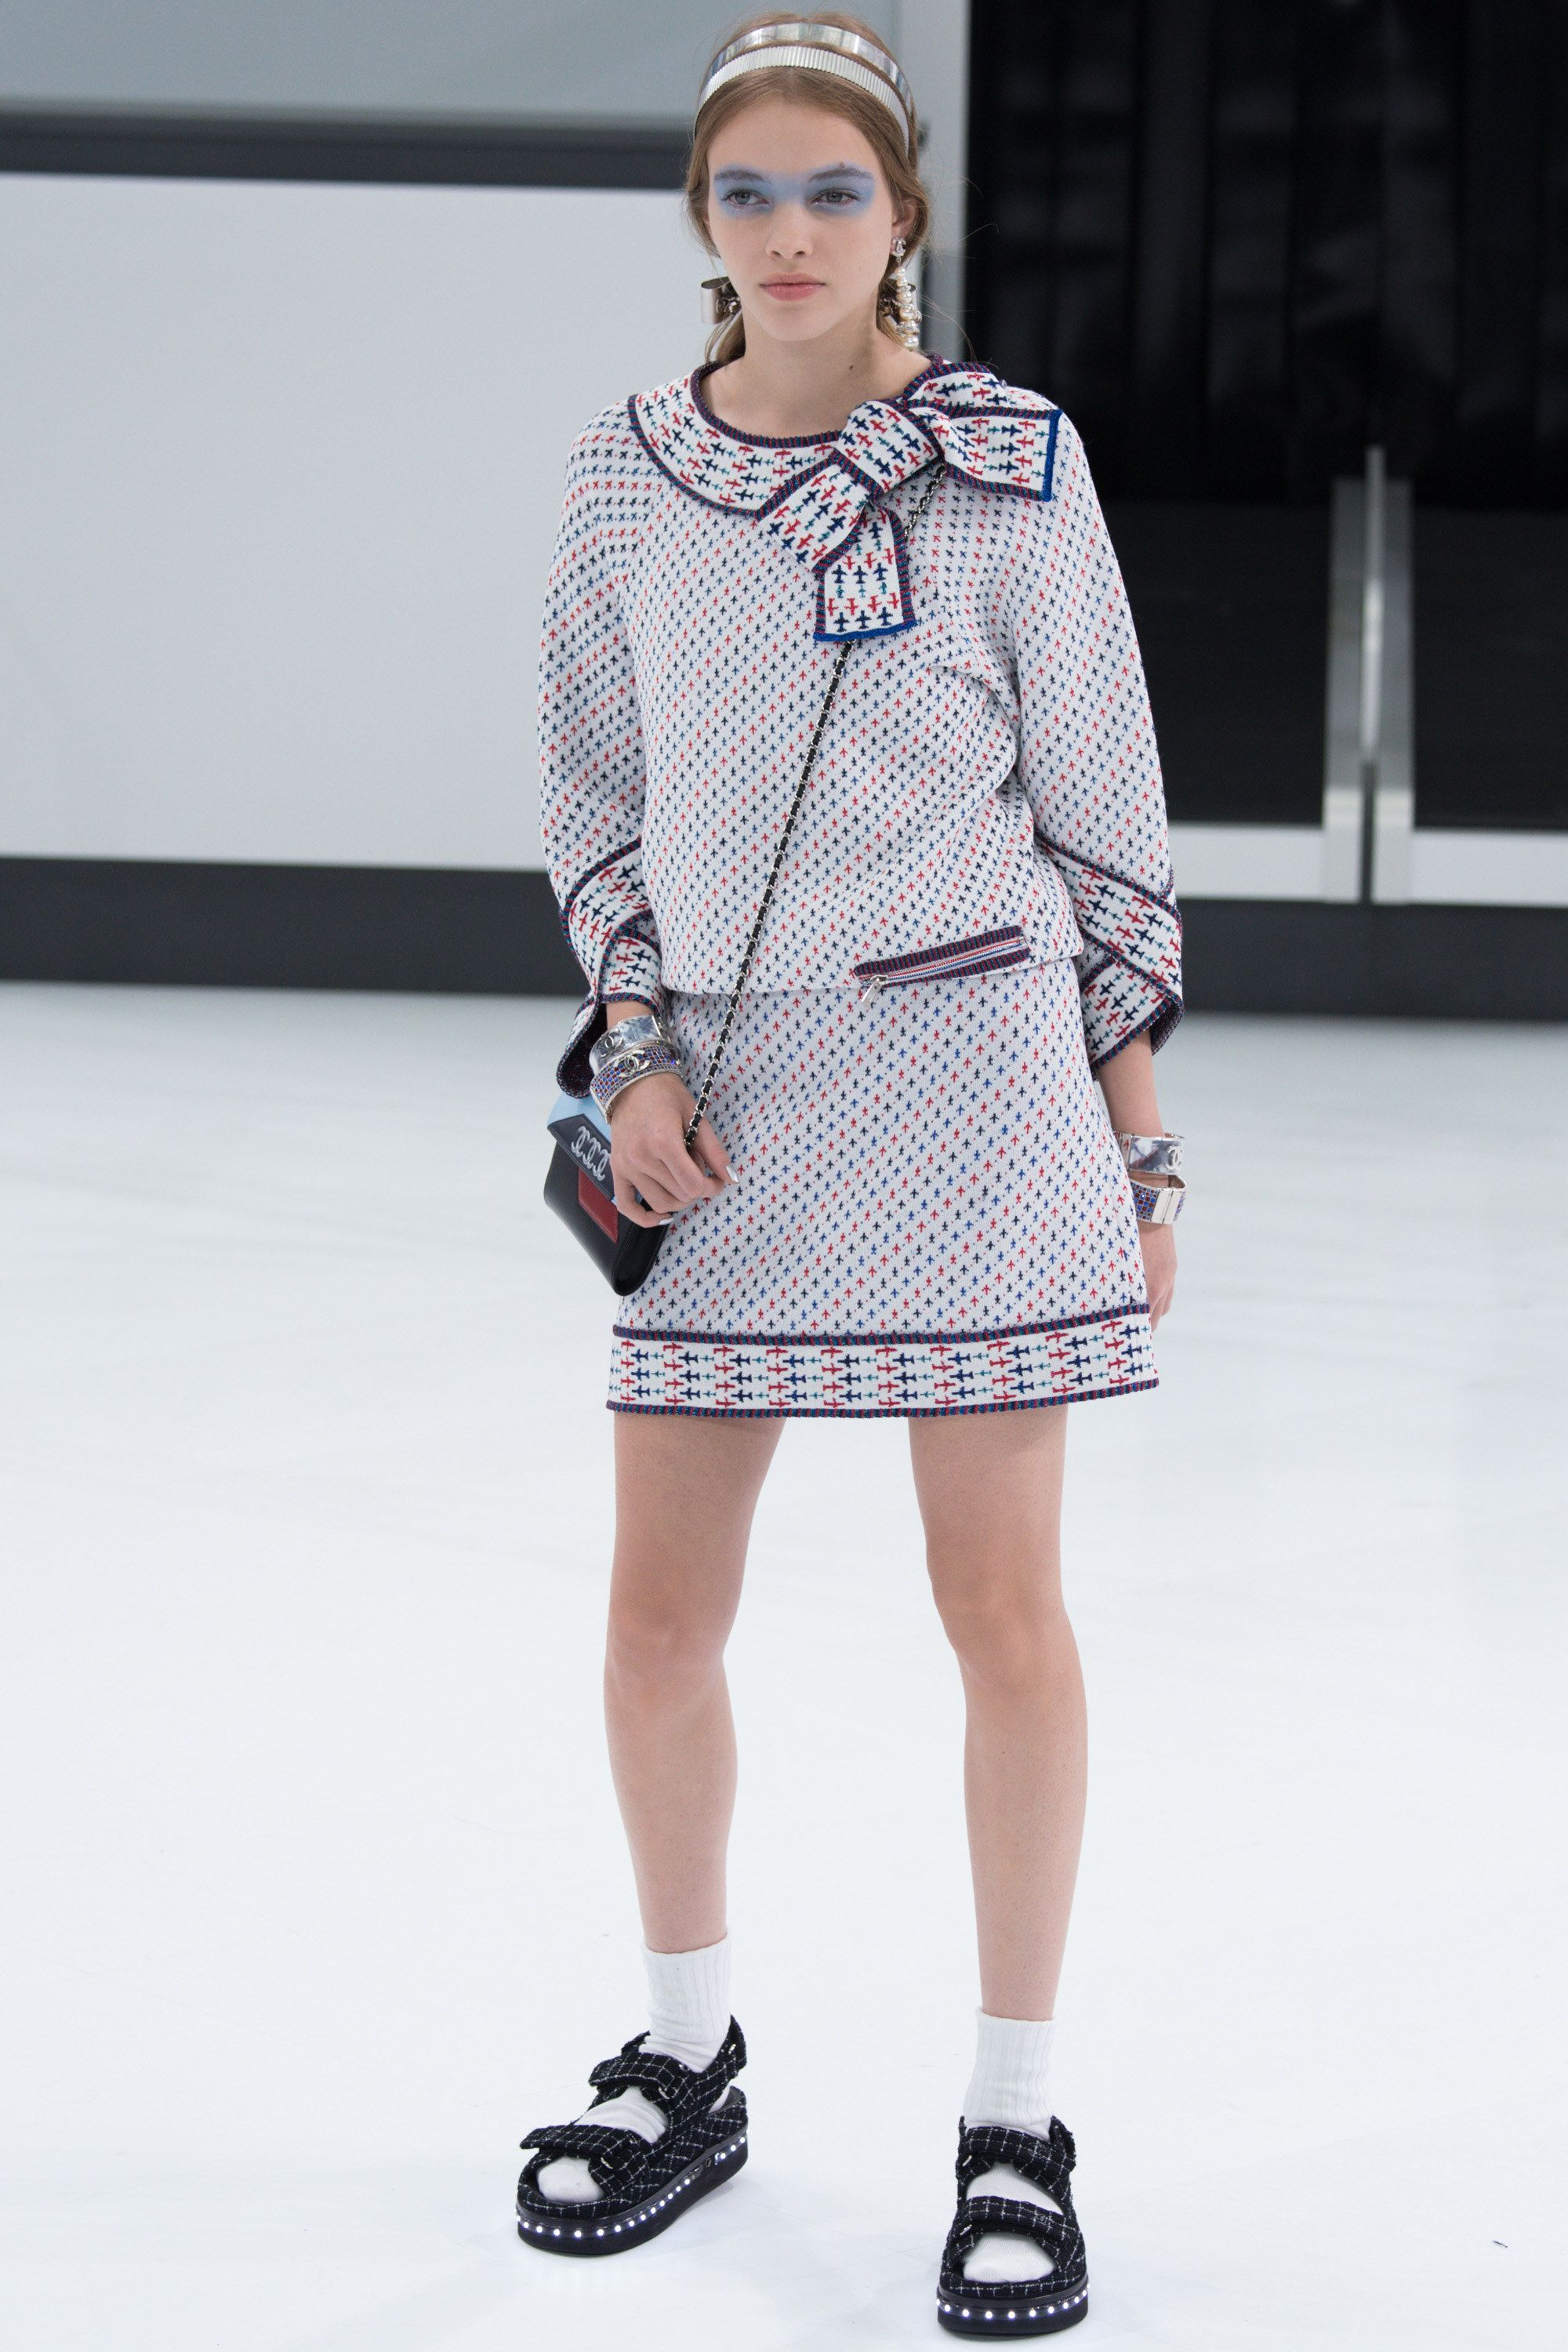 Chanel Spring 2016 Ready-to-Wear Fashion Show - Kitty Hayes